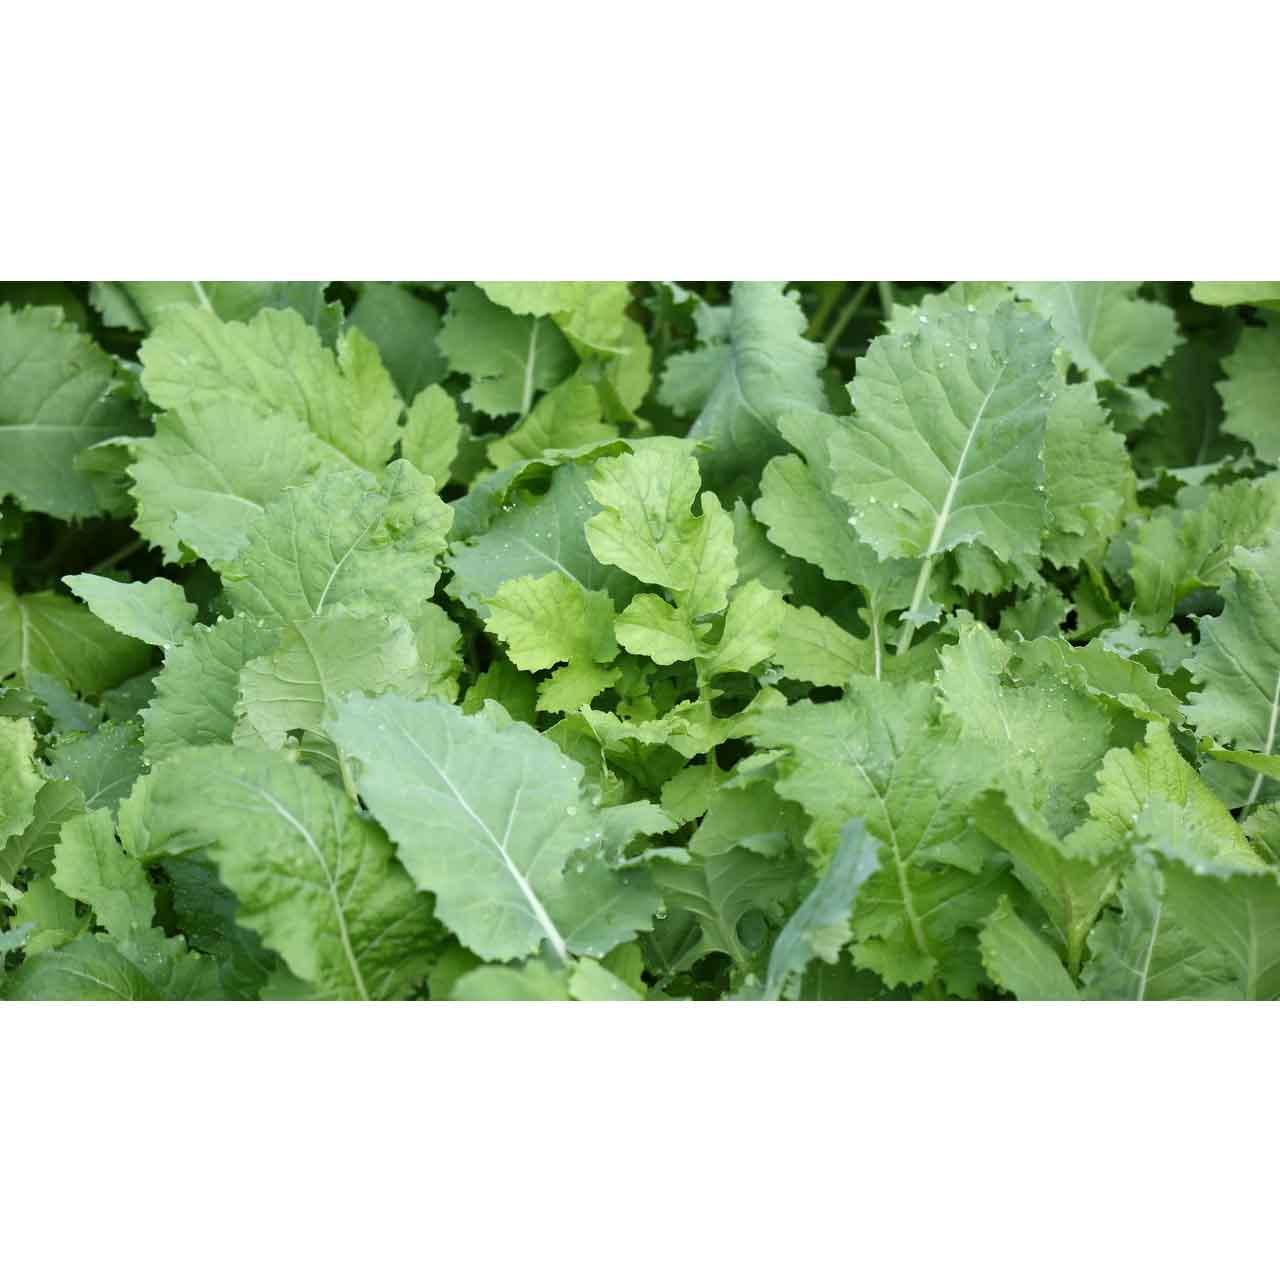 Whitetail Institute Imperial Beets Amp Greens Ebay